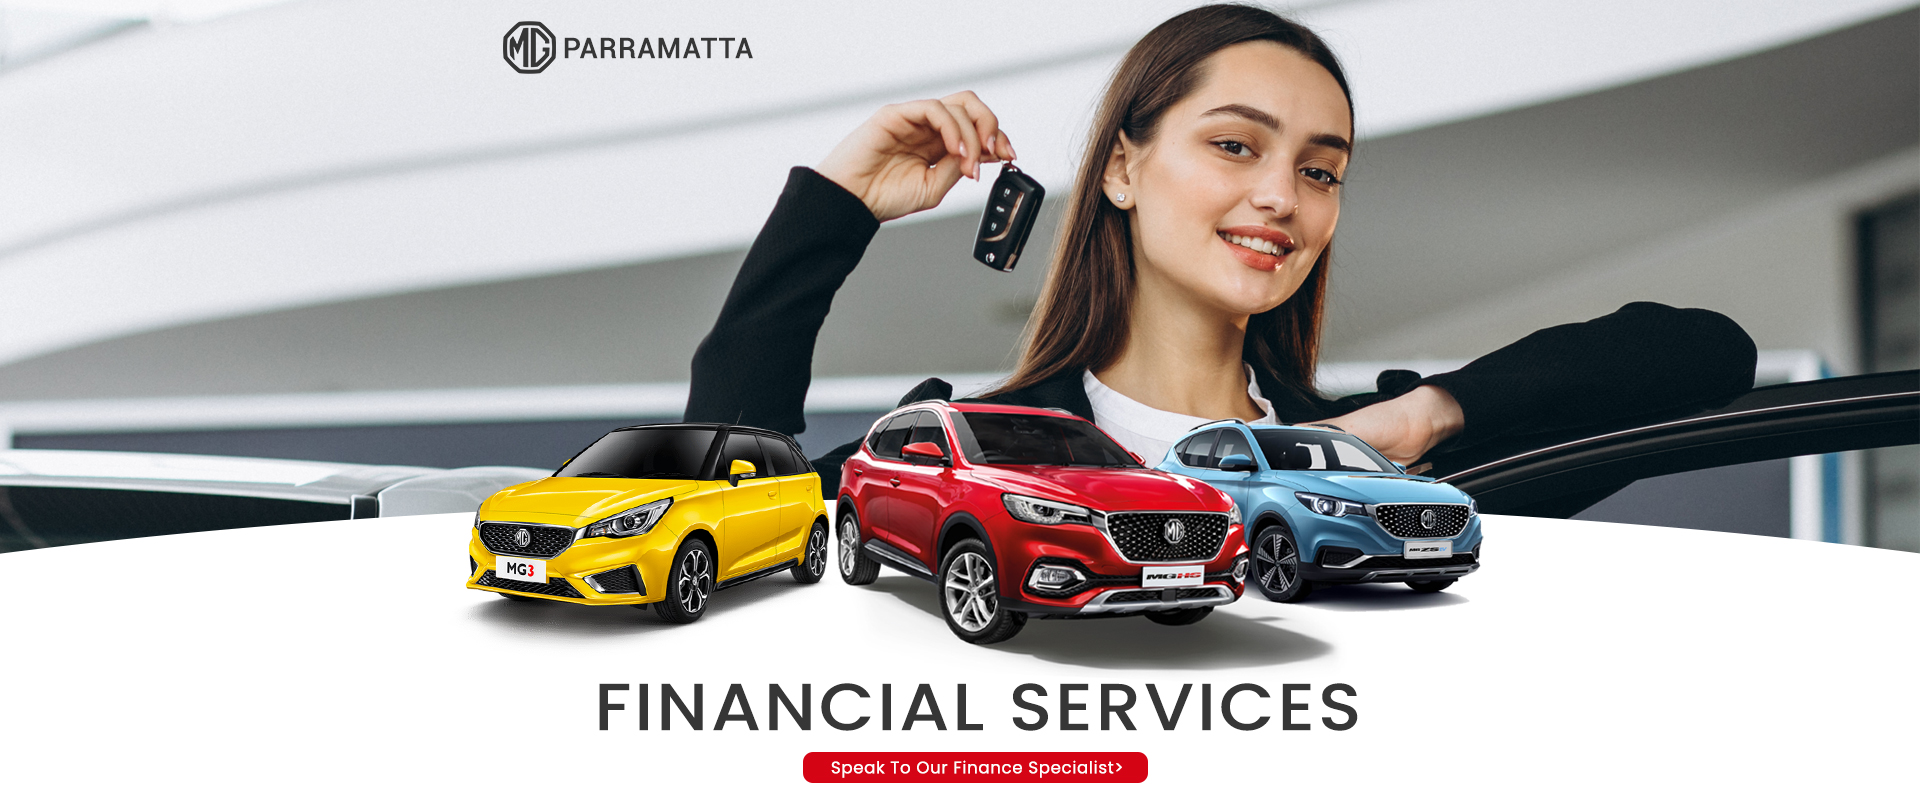 MG Finance Services